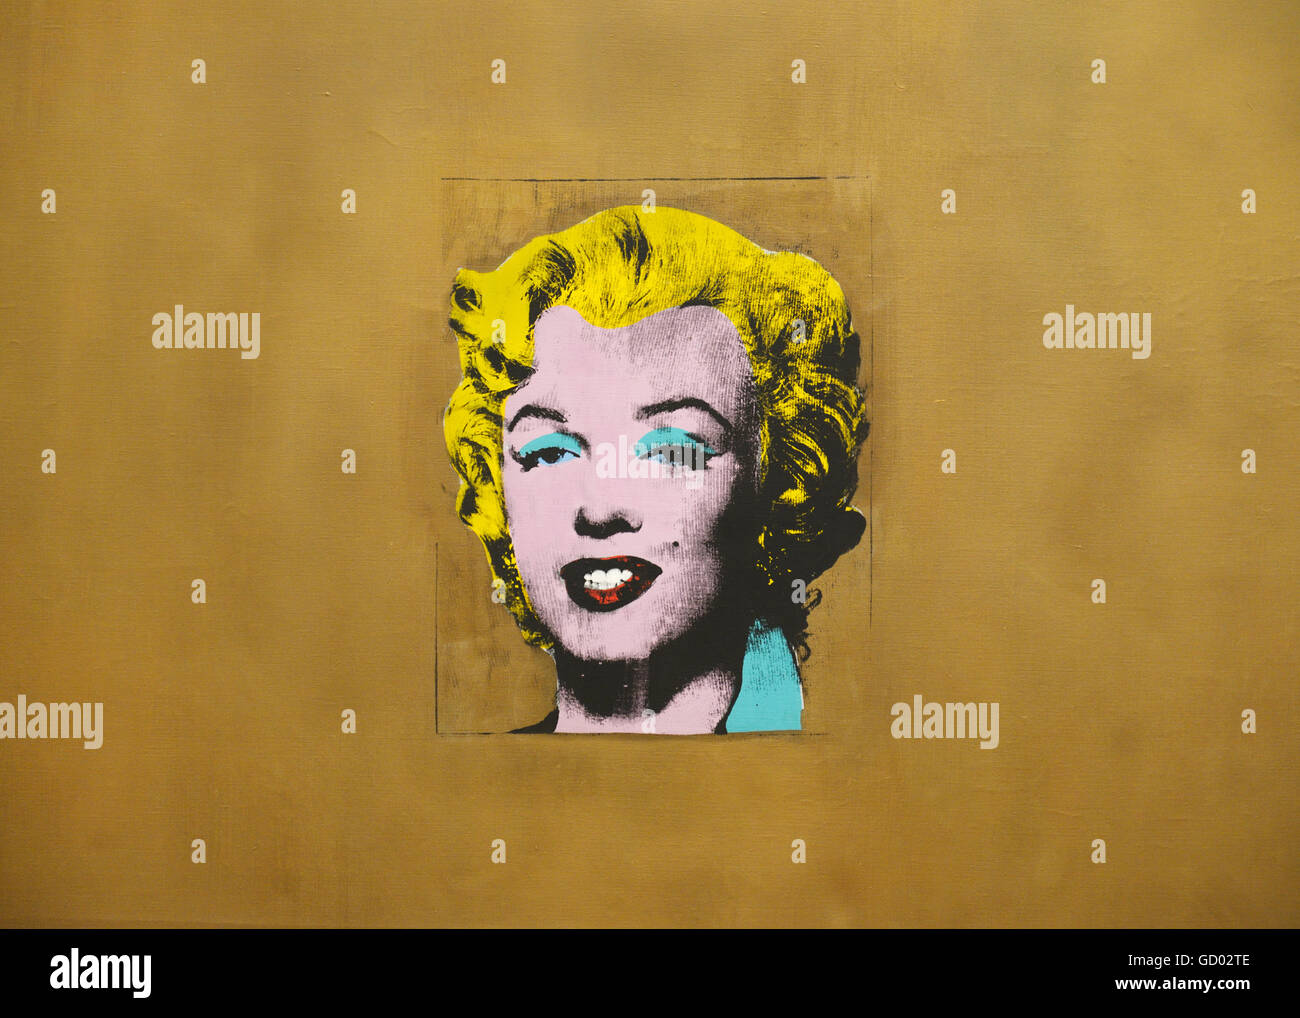 Marilyn Monroe Painting Stock Photos & Marilyn Monroe Painting Stock ...